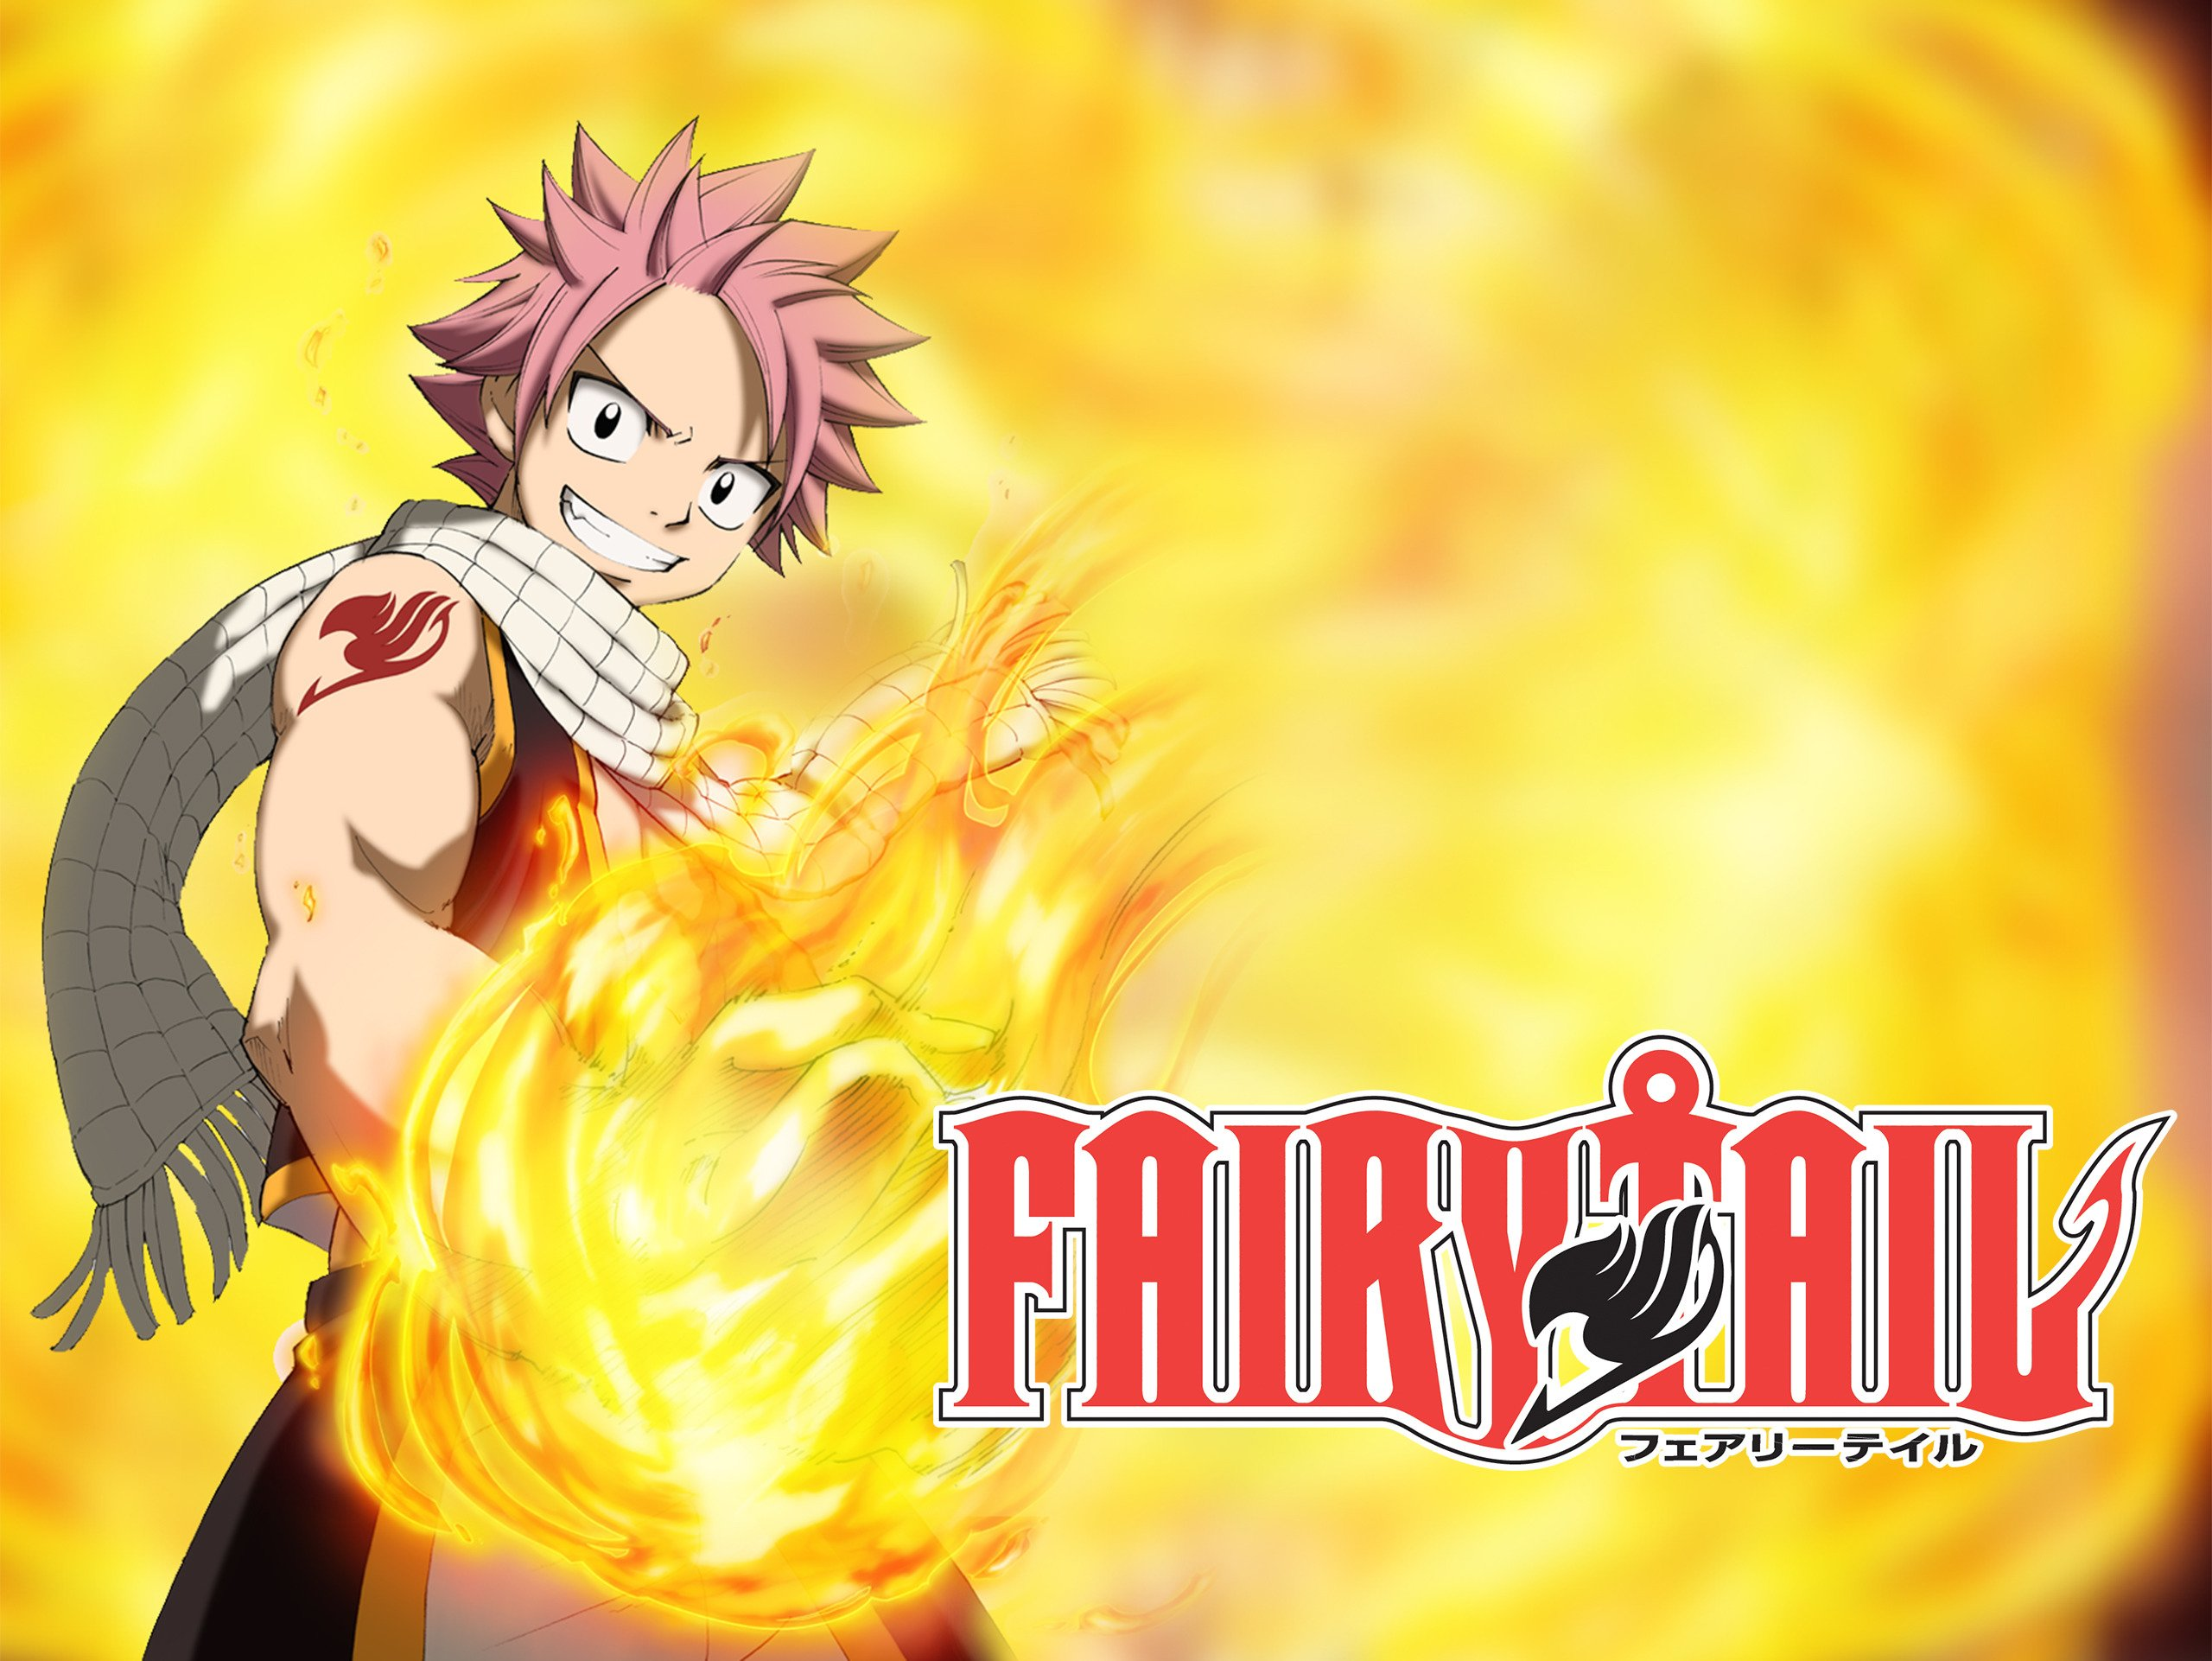 Watch Fairy Tail Season 1 - Prime Video